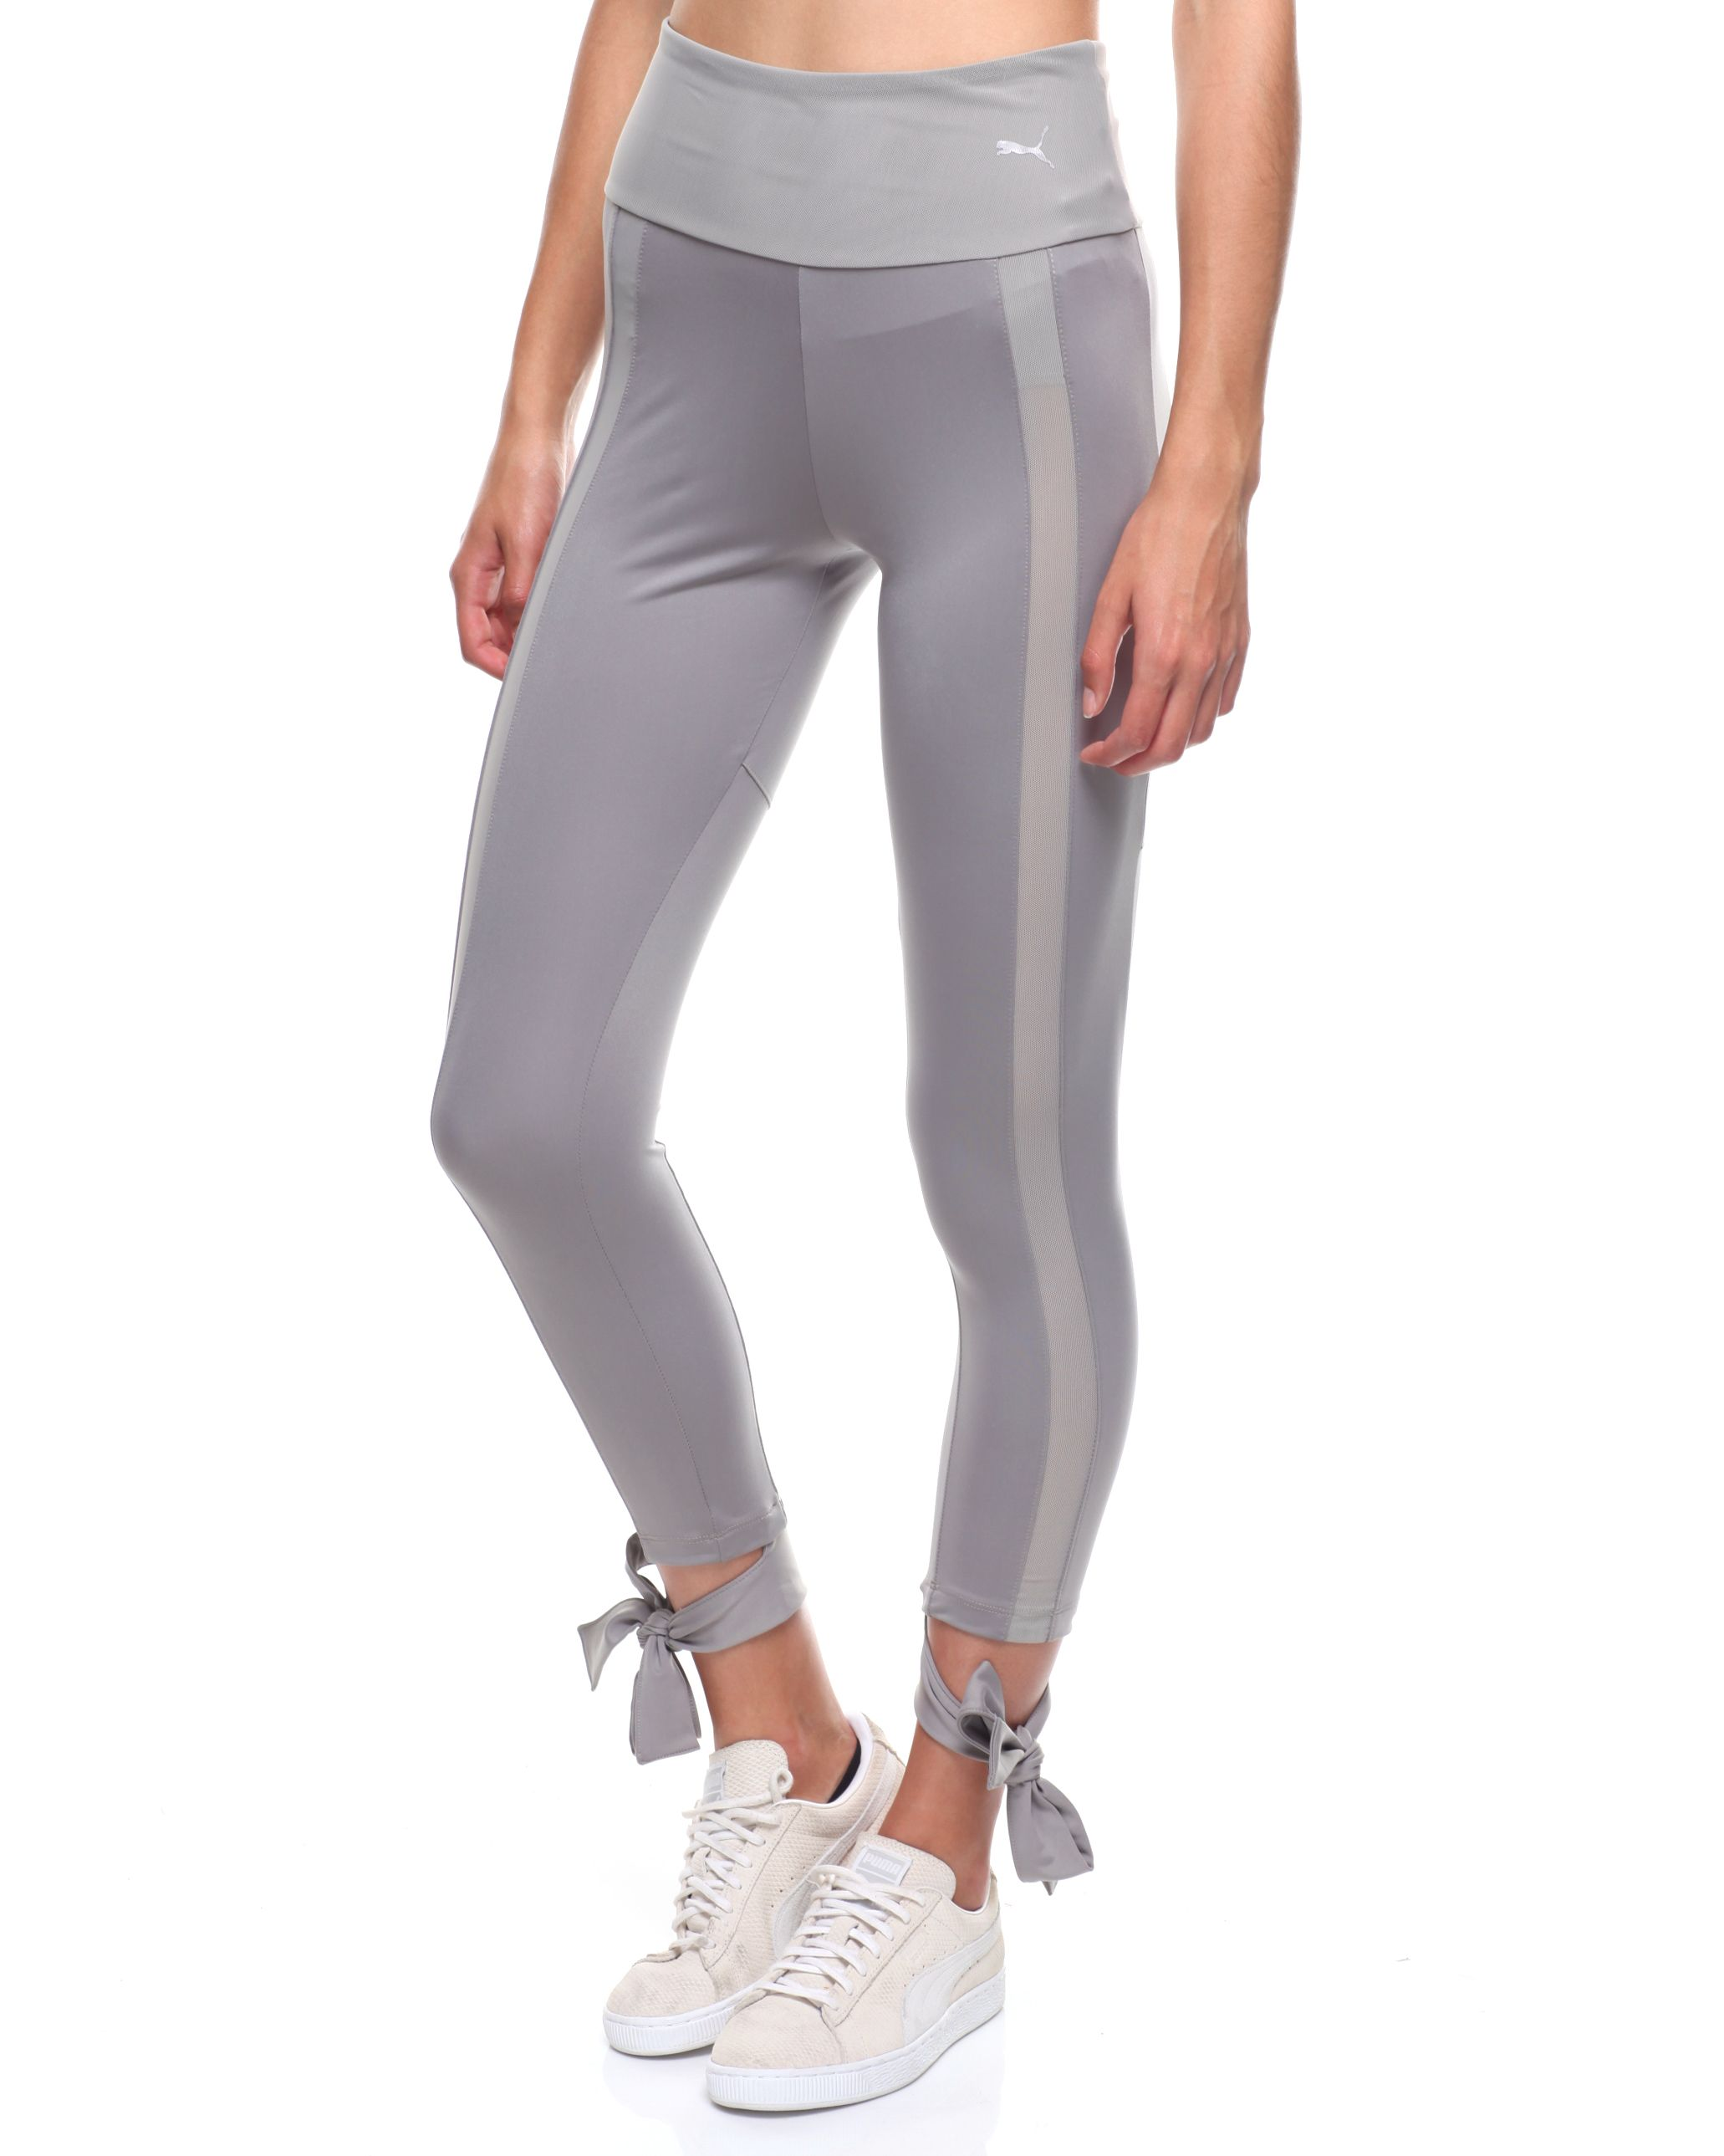 2838a503068626 En Pointe 7/8 Legging Women's Bottoms from Puma. Find Puma fashion & more  at DrJays.co